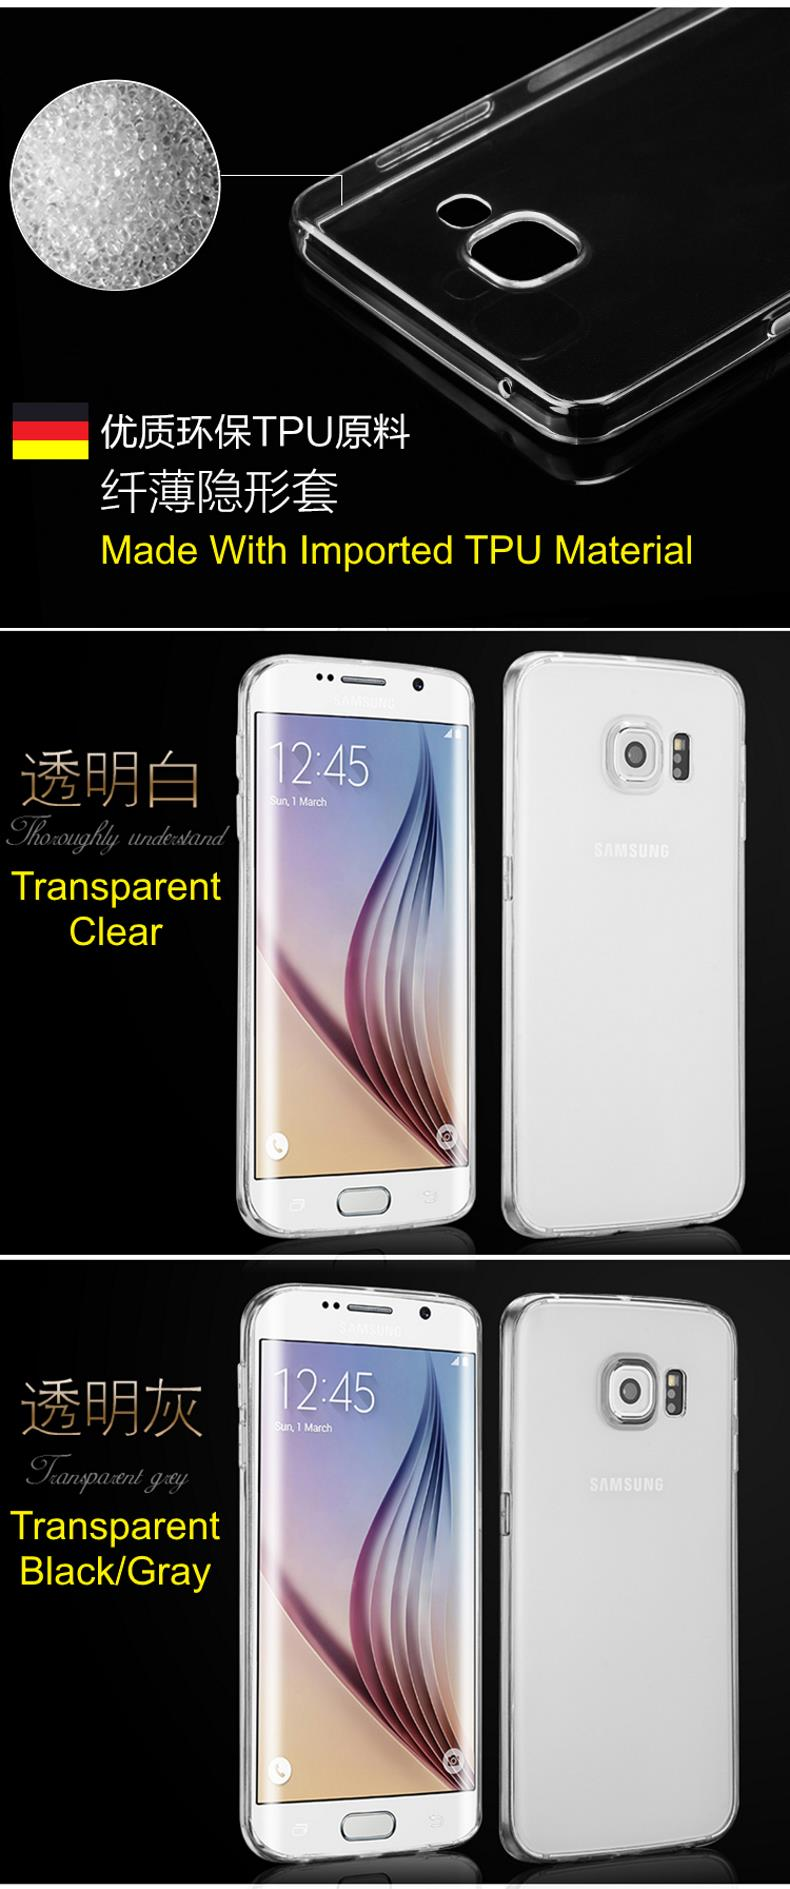 OUCase Samsung Galaxy S6 Edge Anti-Skid Transparent TPU Case